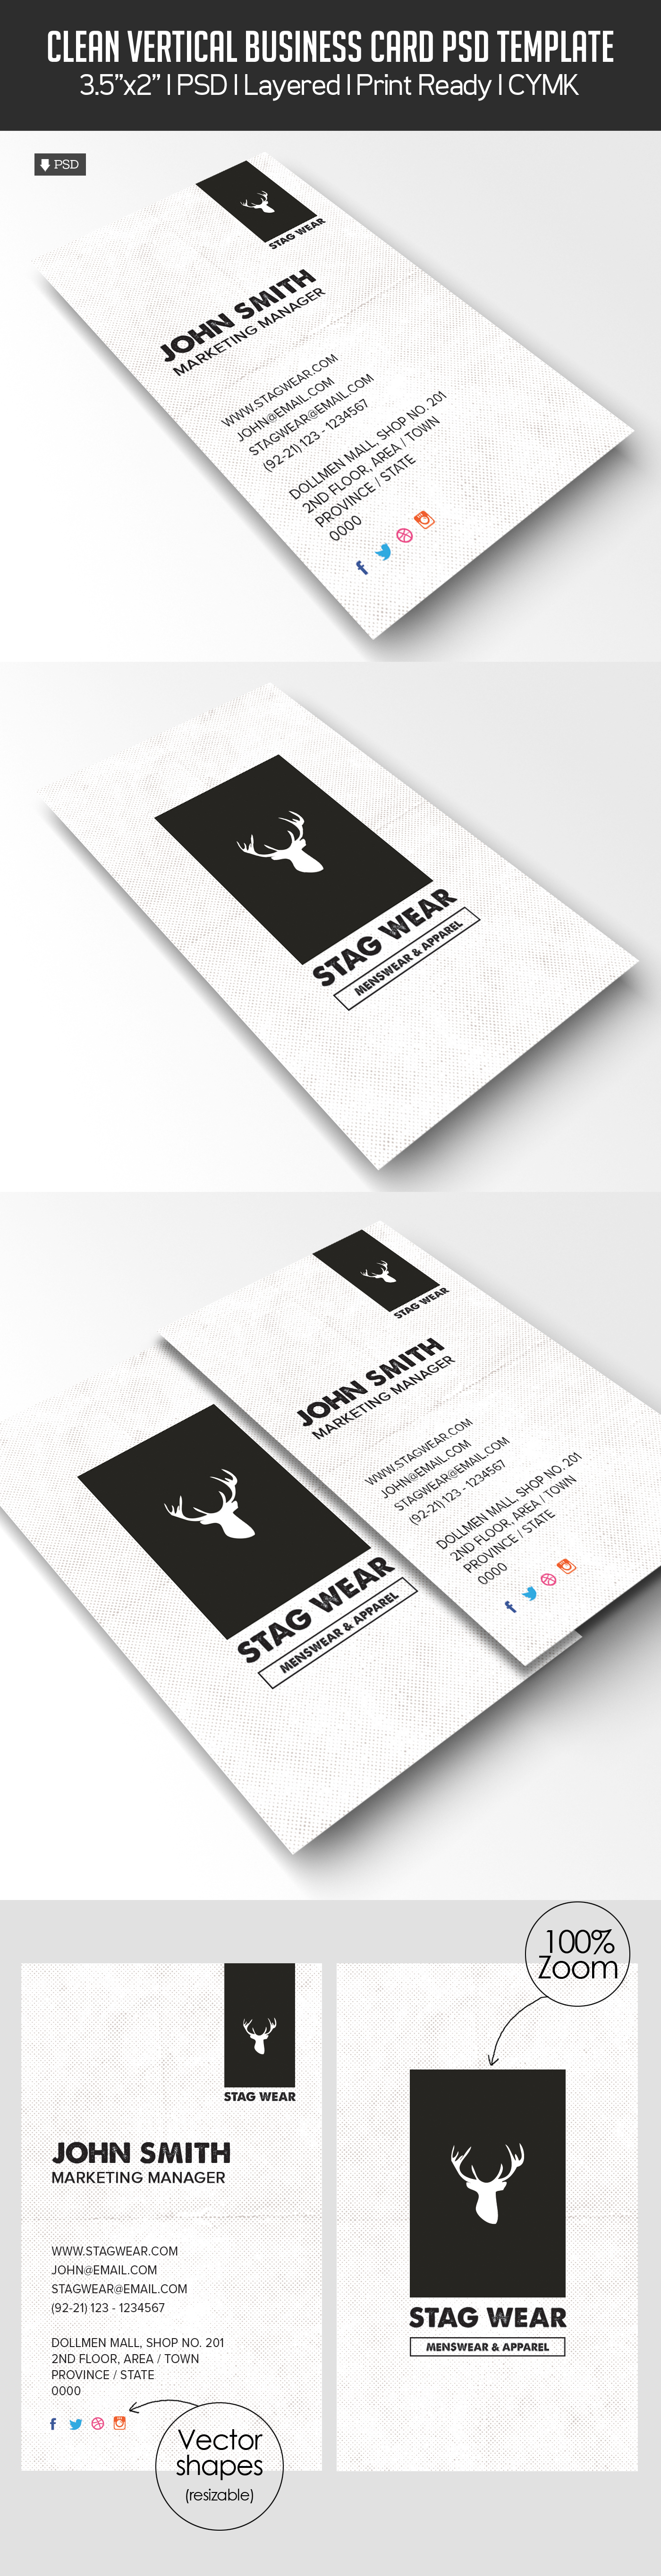 Freebie vertical business card psd template freebies graphic features accmission